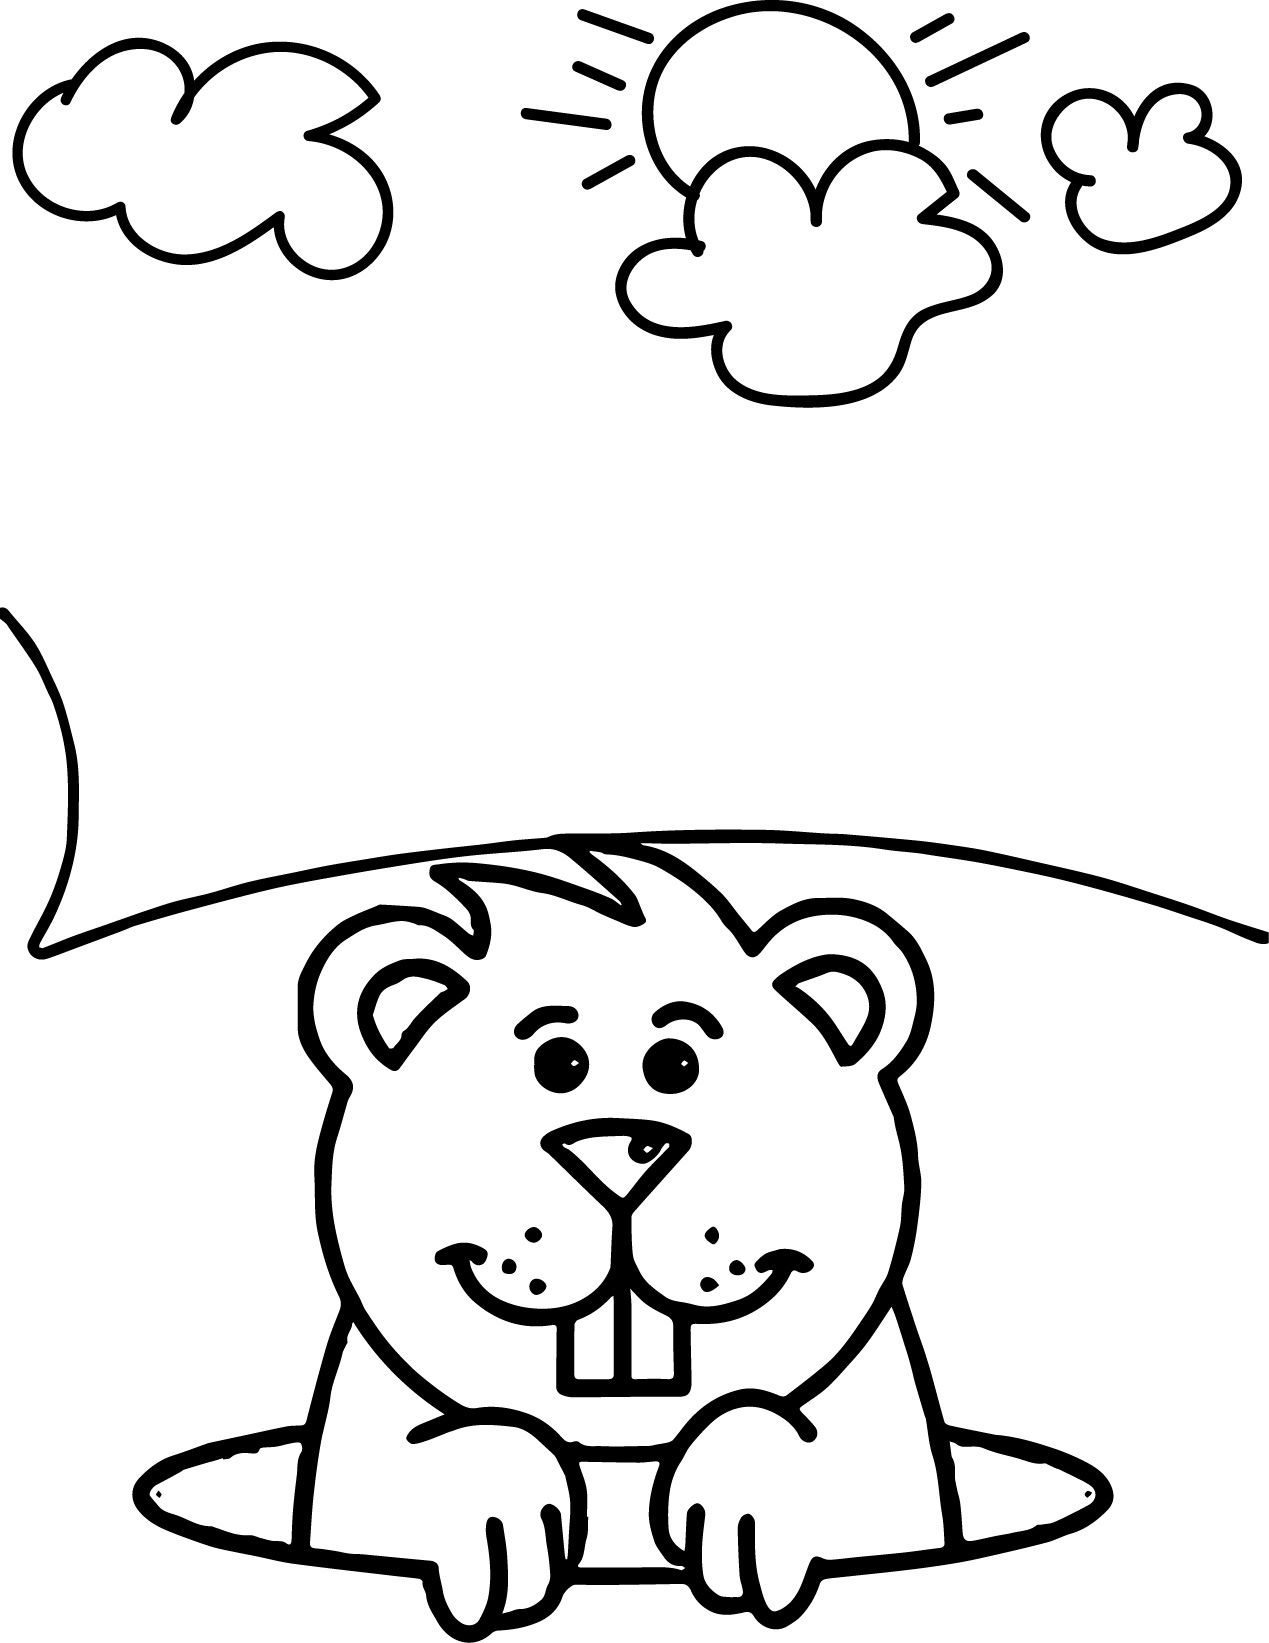 Groundhog Coloring Pages Or Sheets